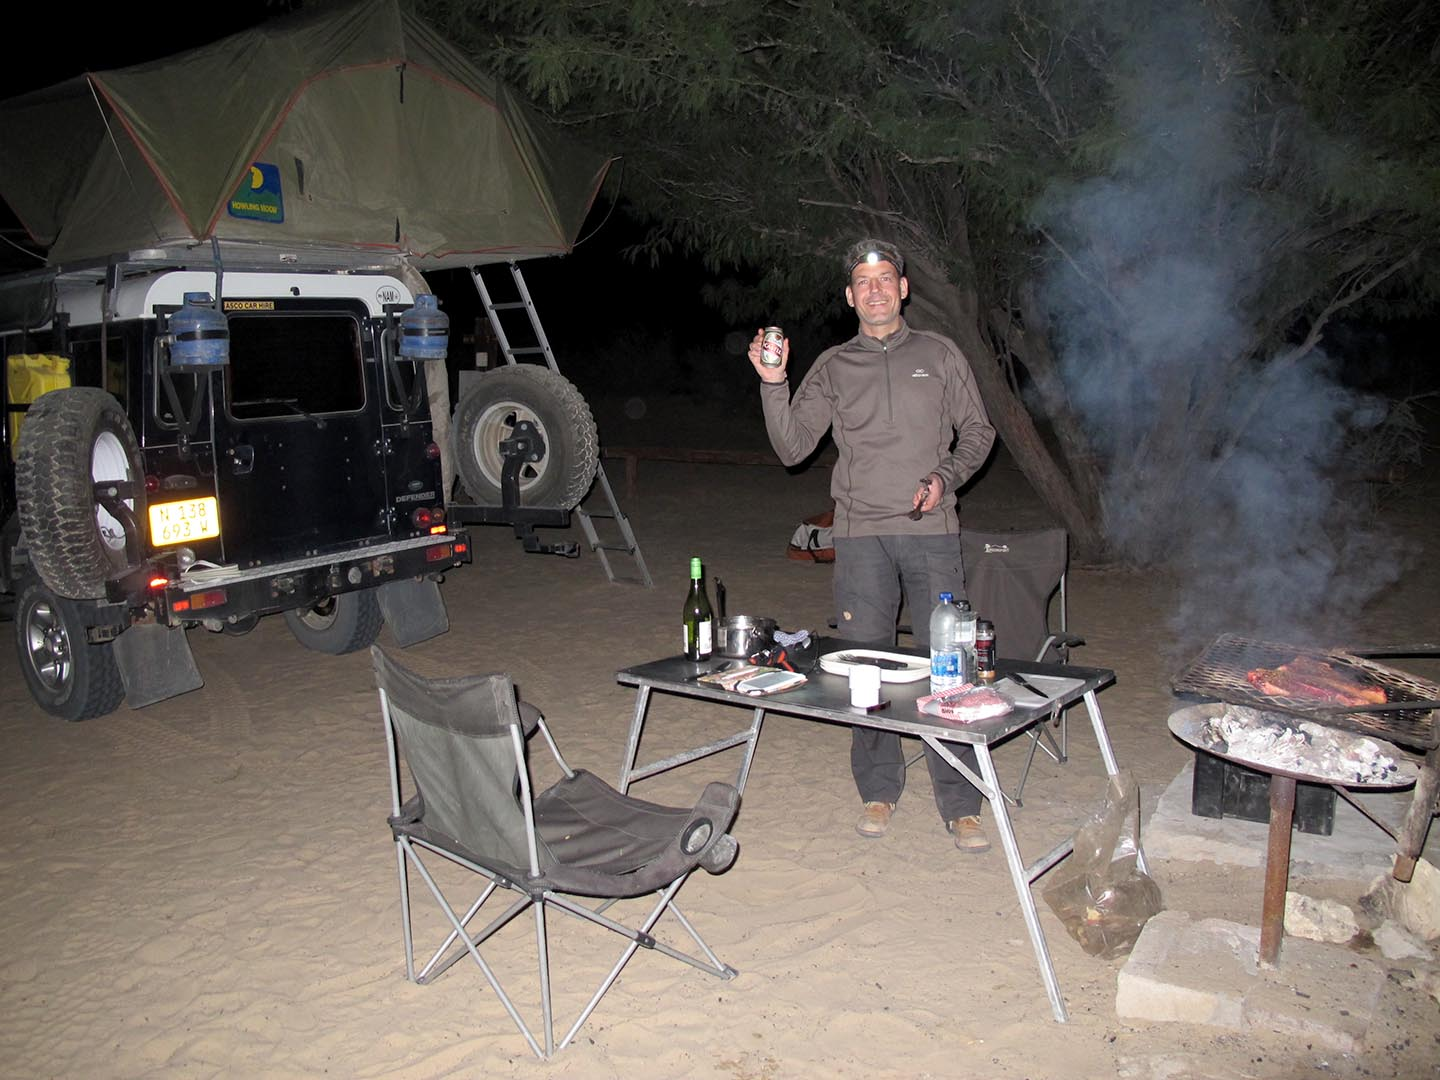 Camping in the Kgalagadi